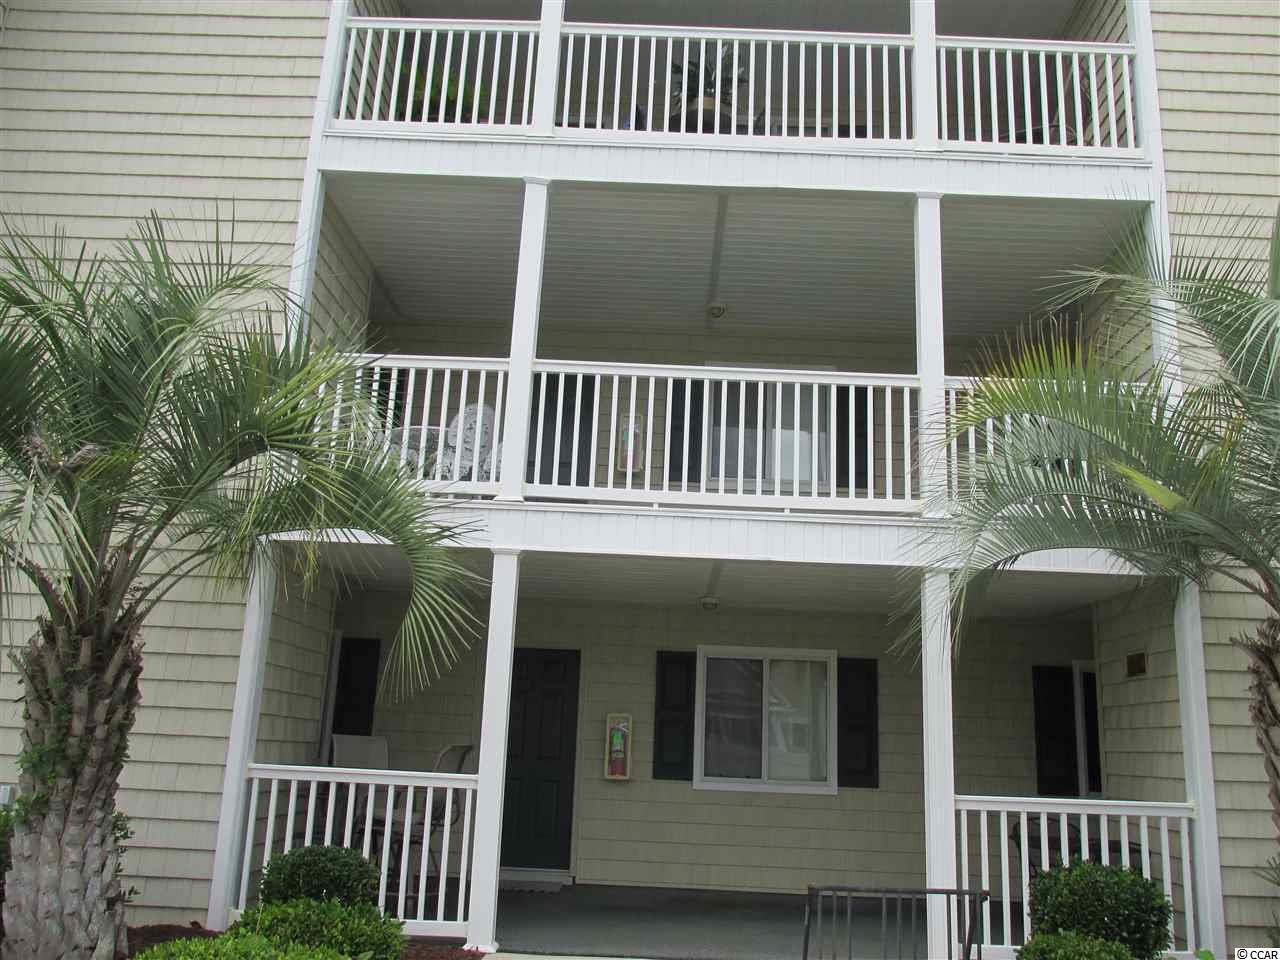 Enjoy this beautifully maintained partially furnished unit in the heart of the of the Ocean Drive section of North Myrtle Beach. Close to Everything! A short walk to the beach, shopping, waterway, shag clubs, and grocery stores. Condo features new beautiful flooring in the kitchen and bathrooms and a screened porch that you will never want to leave. End unit offers much more light and open feeling. Storm door, garbage disposal, faucets, paint and vent registers have been recently replaced. This unit has 2 storage units which is a rare find. Bicycle racks, boat storage, rv storage, day docks, piers, grills and 2 pools with new restrooms are all available for the owners convenience in this gated Intracoastal Waterway community. Don't miss this opportunity to own your little piece of paradise!